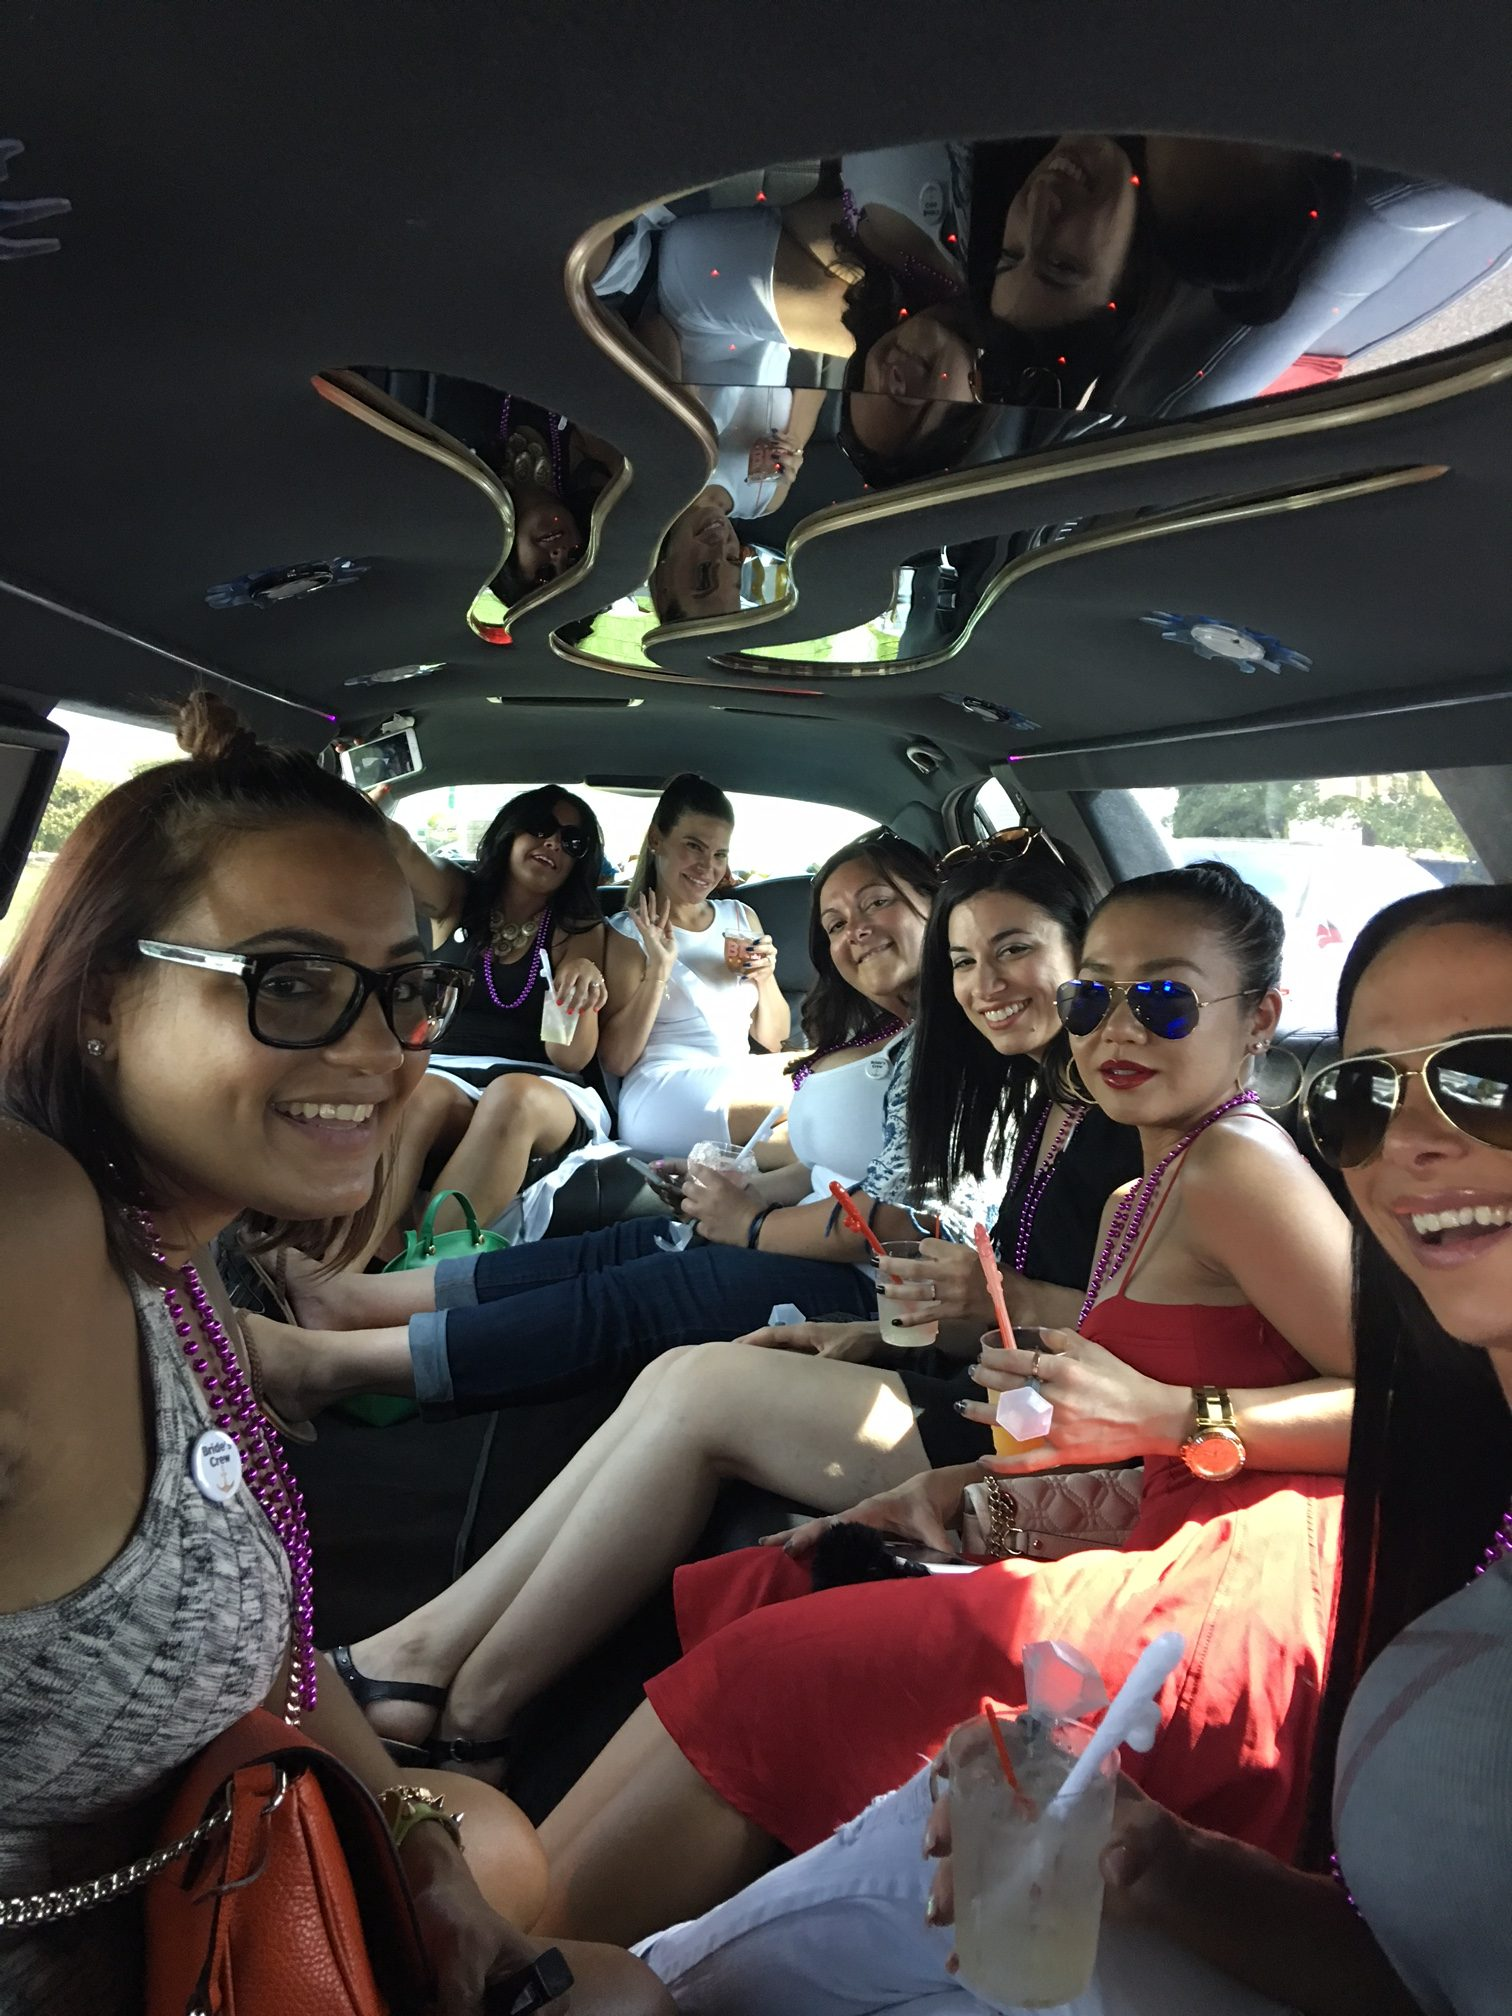 ocean county limousine bachelorette party limo